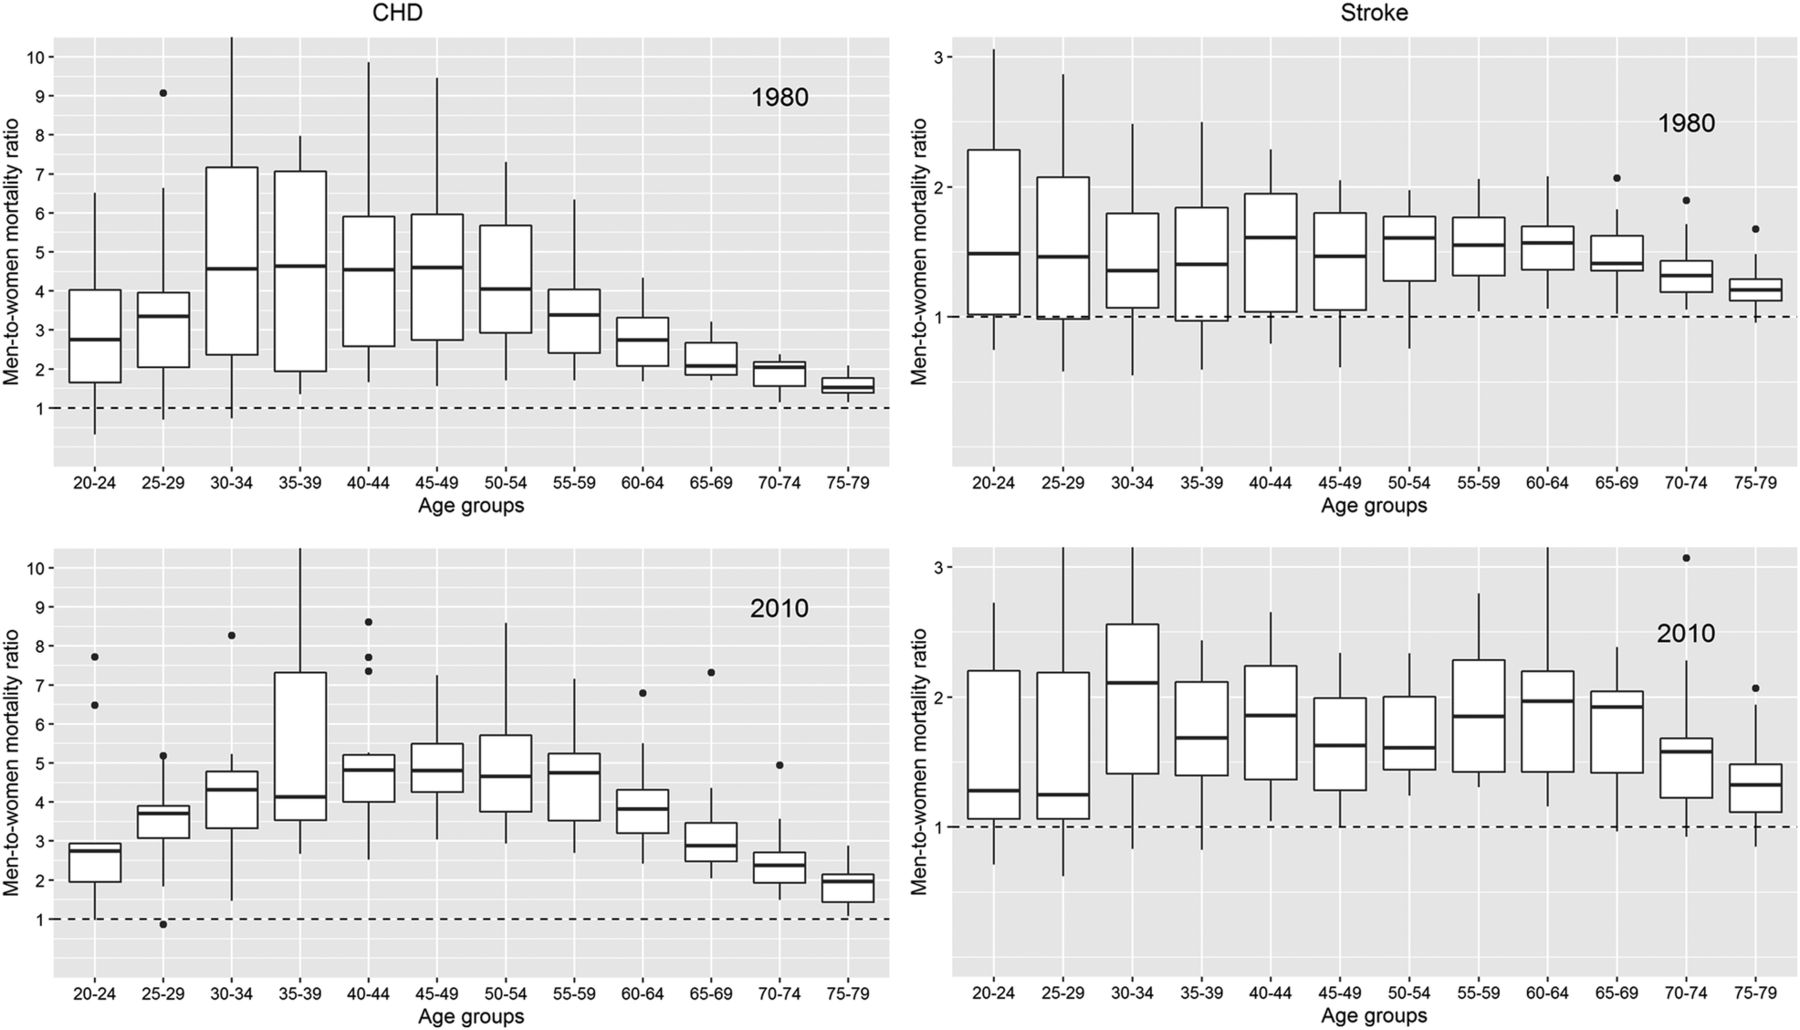 Sex Differences In Coronary Heart Disease And Stroke Mortality A Global Assessment Of The Effect Of Ageing Between 1980 And 2010 Bmj Global Health